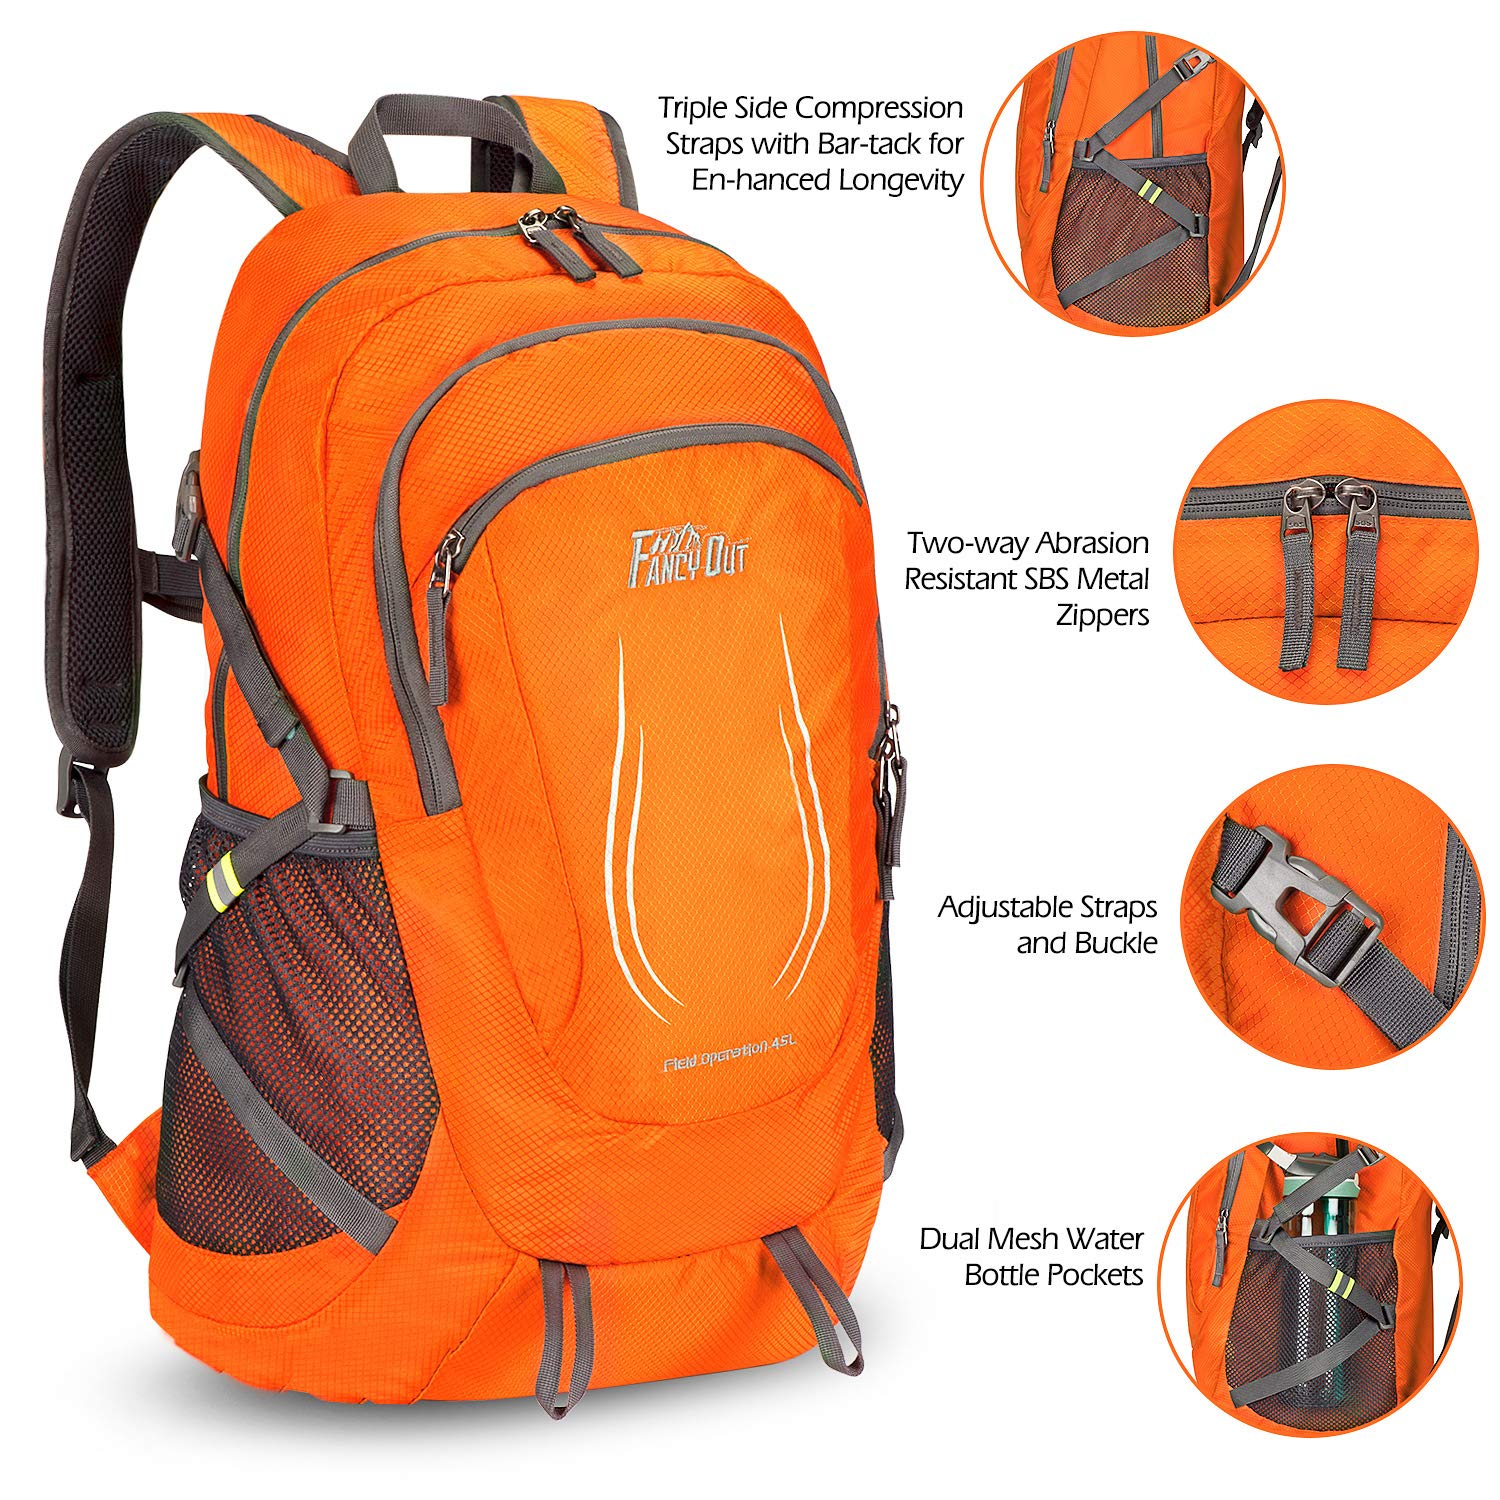 Foldable Hiking Backpack FANCYOUT 40L Travel Daypack Water-Resistant Lightweight Hiking Daypack for Camping